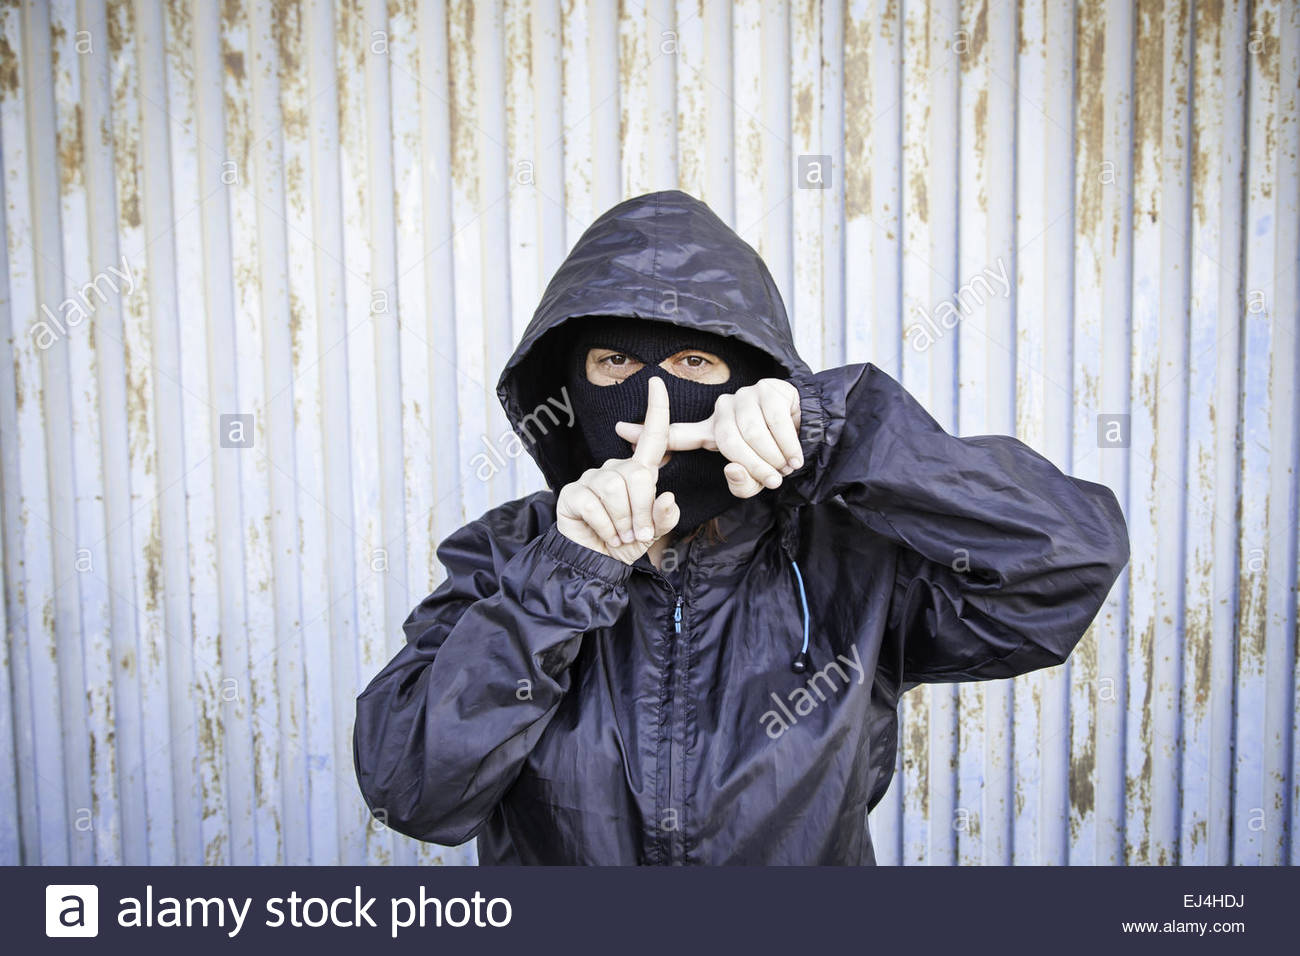 Woman with ski masks and violent hooded mask - Stock Image